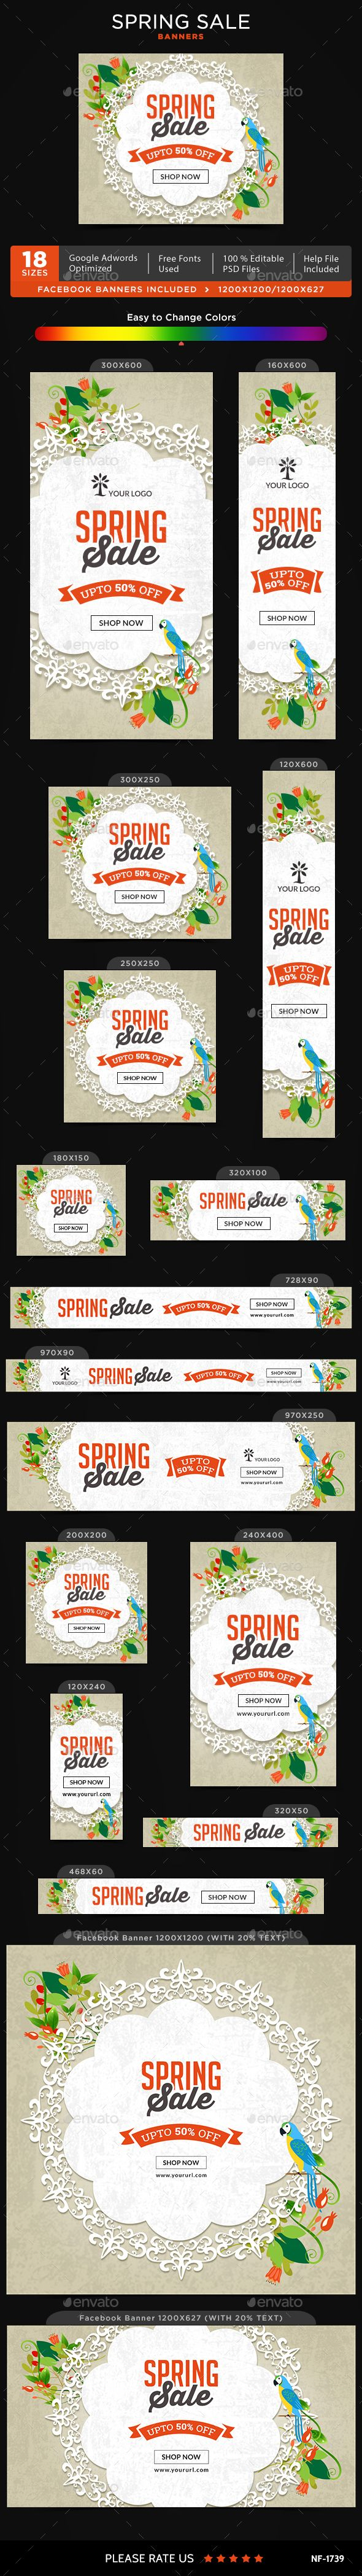 Spring Sale Banners - #Banners & Ads #Web Elements Download here: https://graphicriver.net/item/spring-sale-banners/19537980?ref=alena994